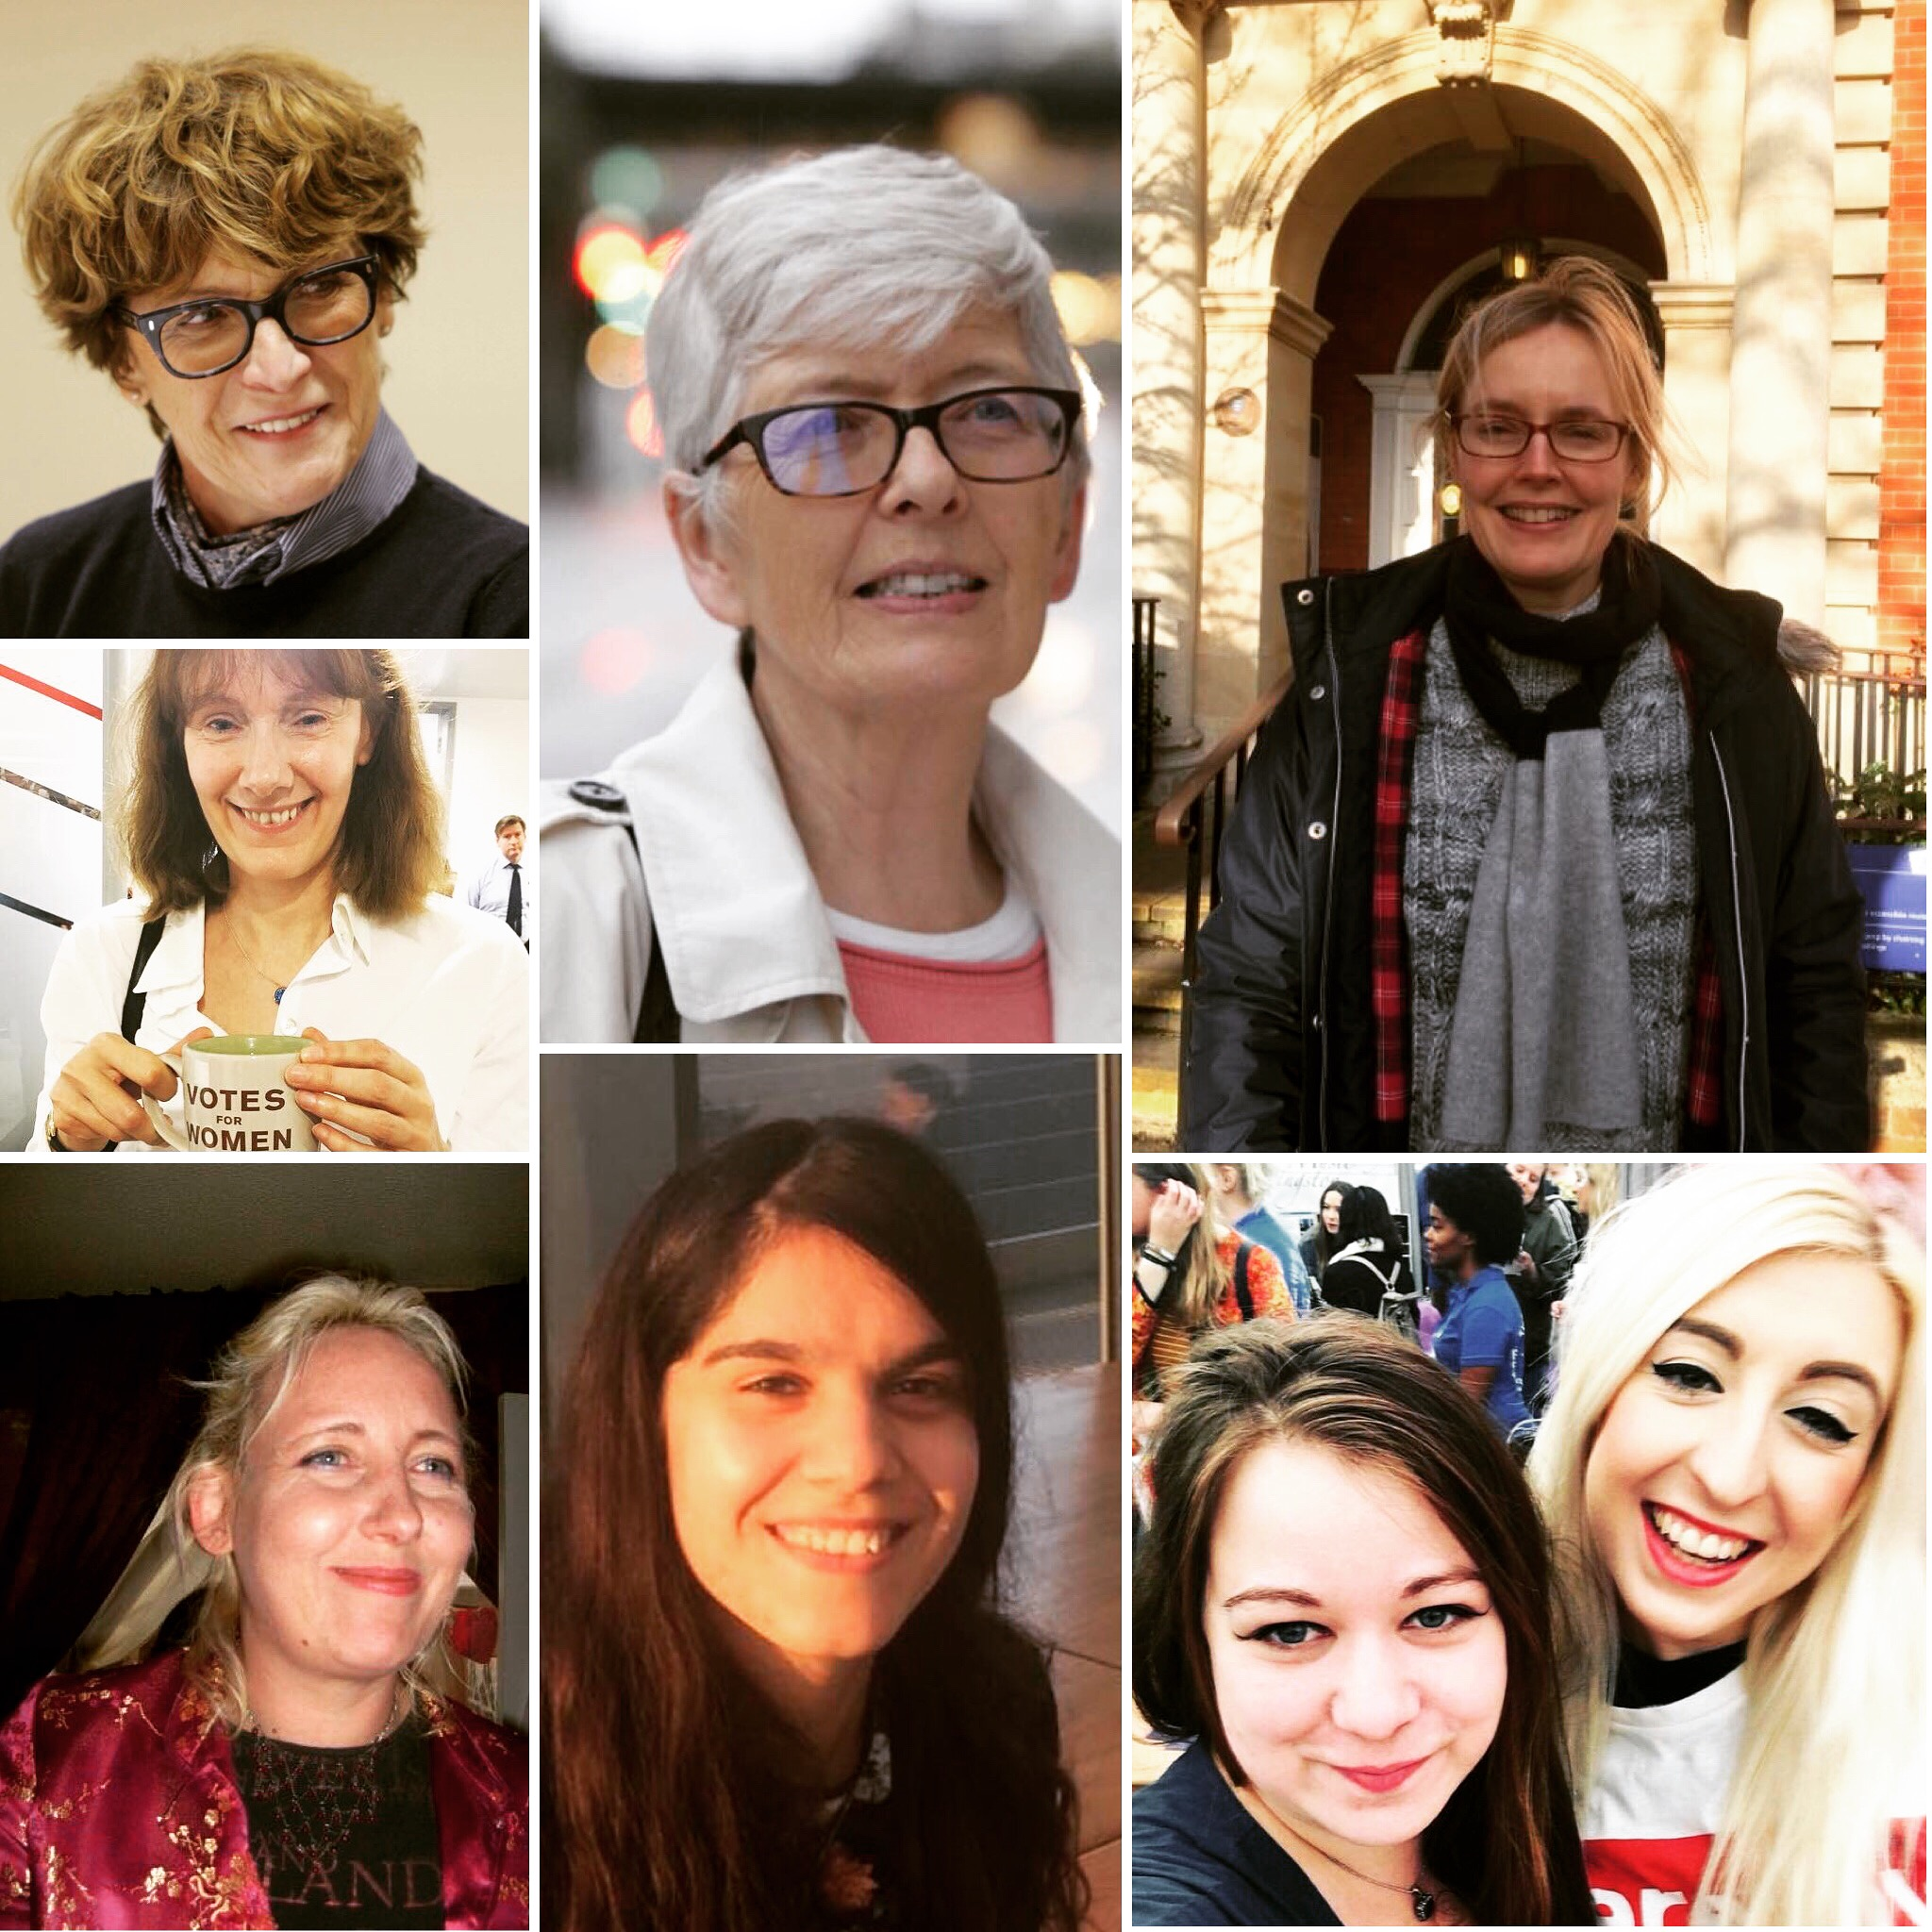 Kingston_and_Surbition_Local_Elections_Women_Candidates.JPG